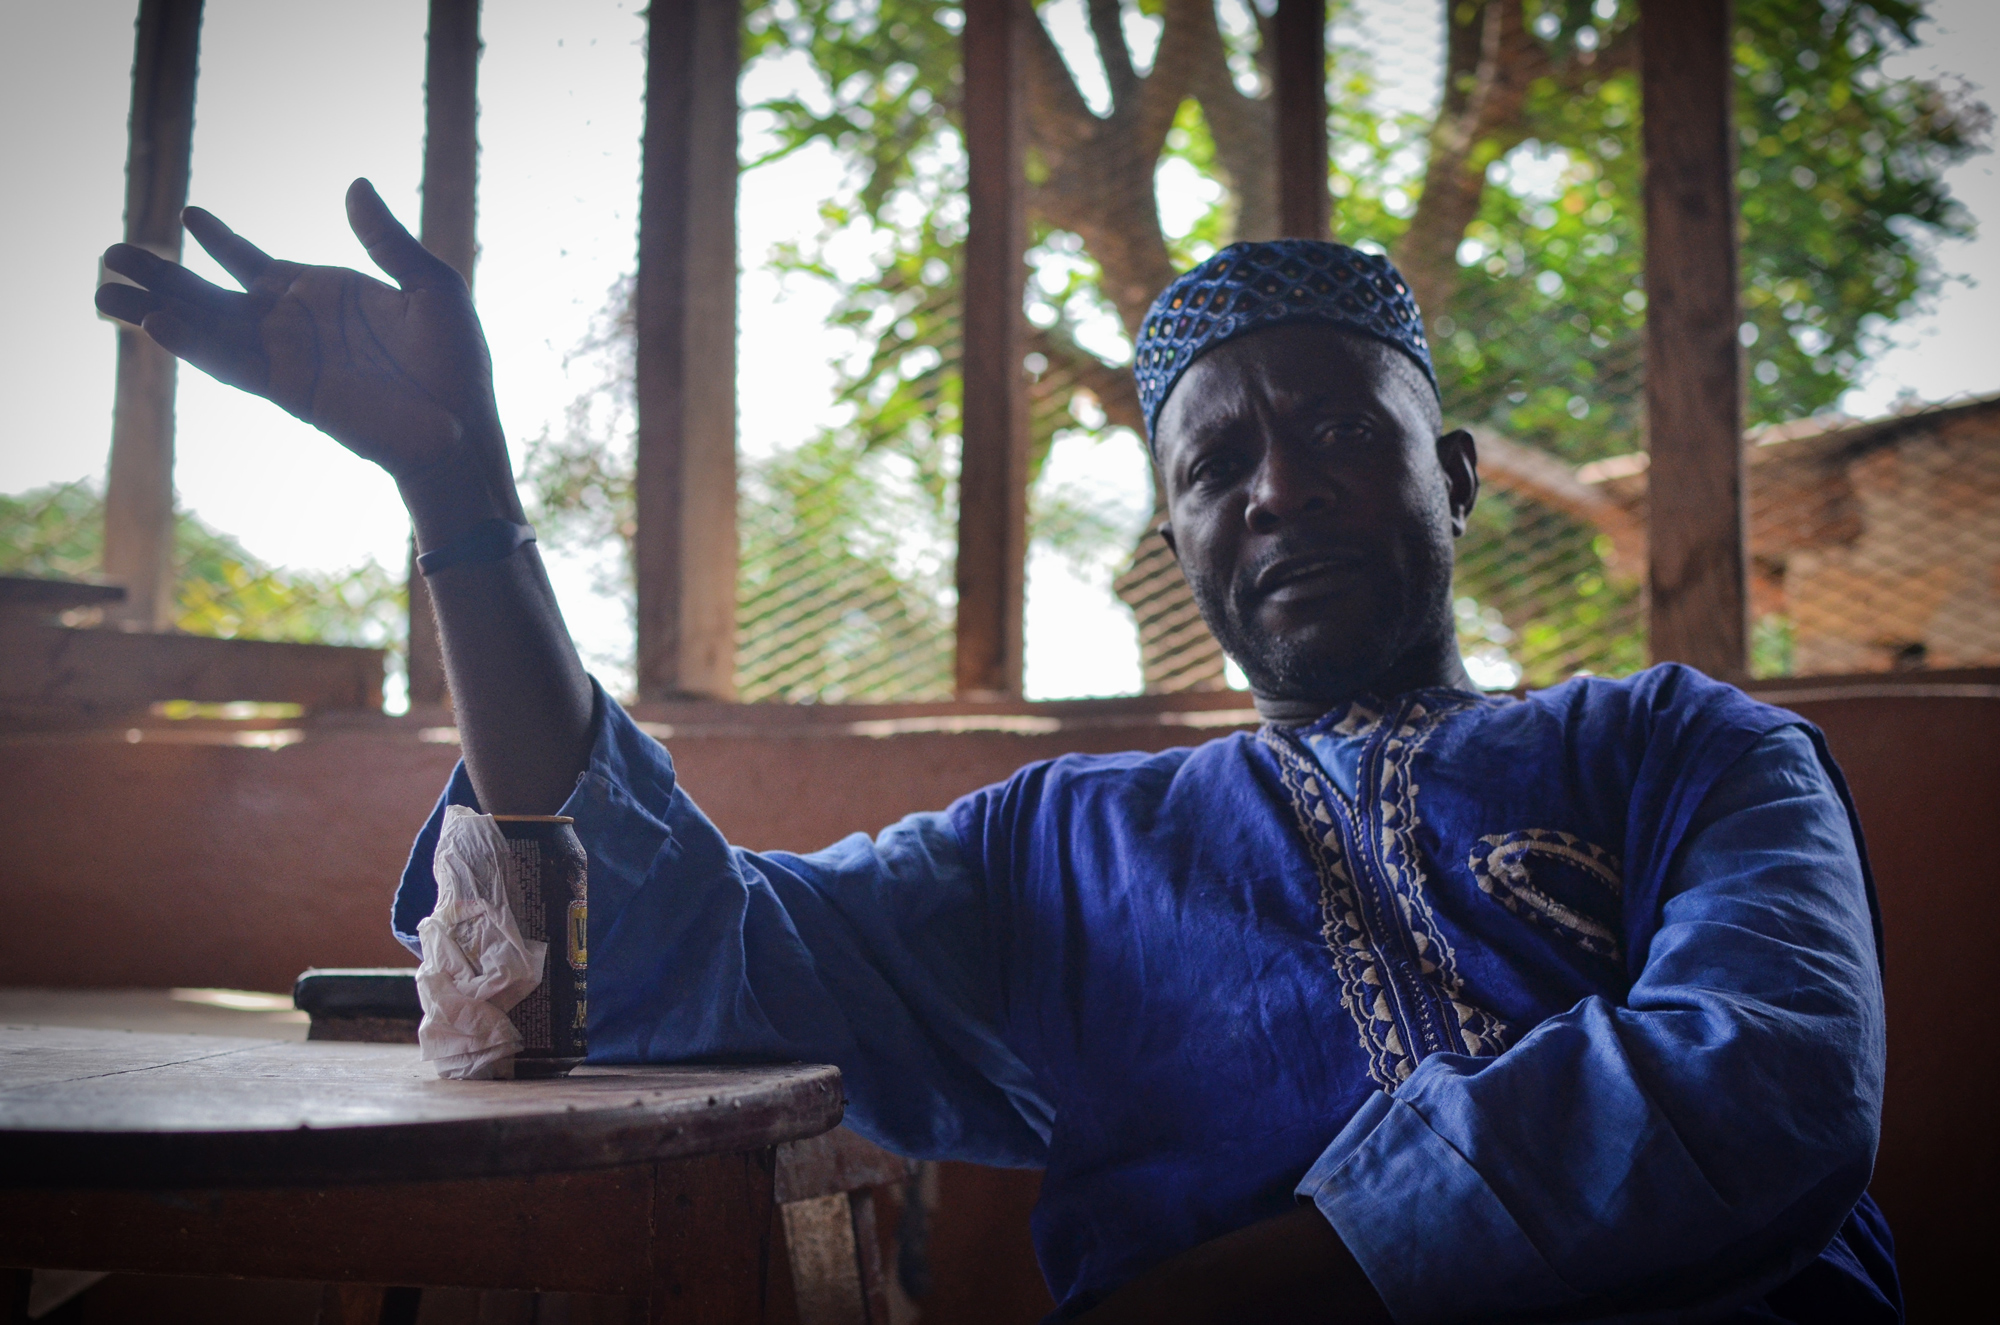 Ibrahim Bokari was shot in the foot by police during an anti-mining protest in 2007. He now leads the Campaign for Just Mining at the Network Movement for Justice and Development, a civil society organization in Koidu.